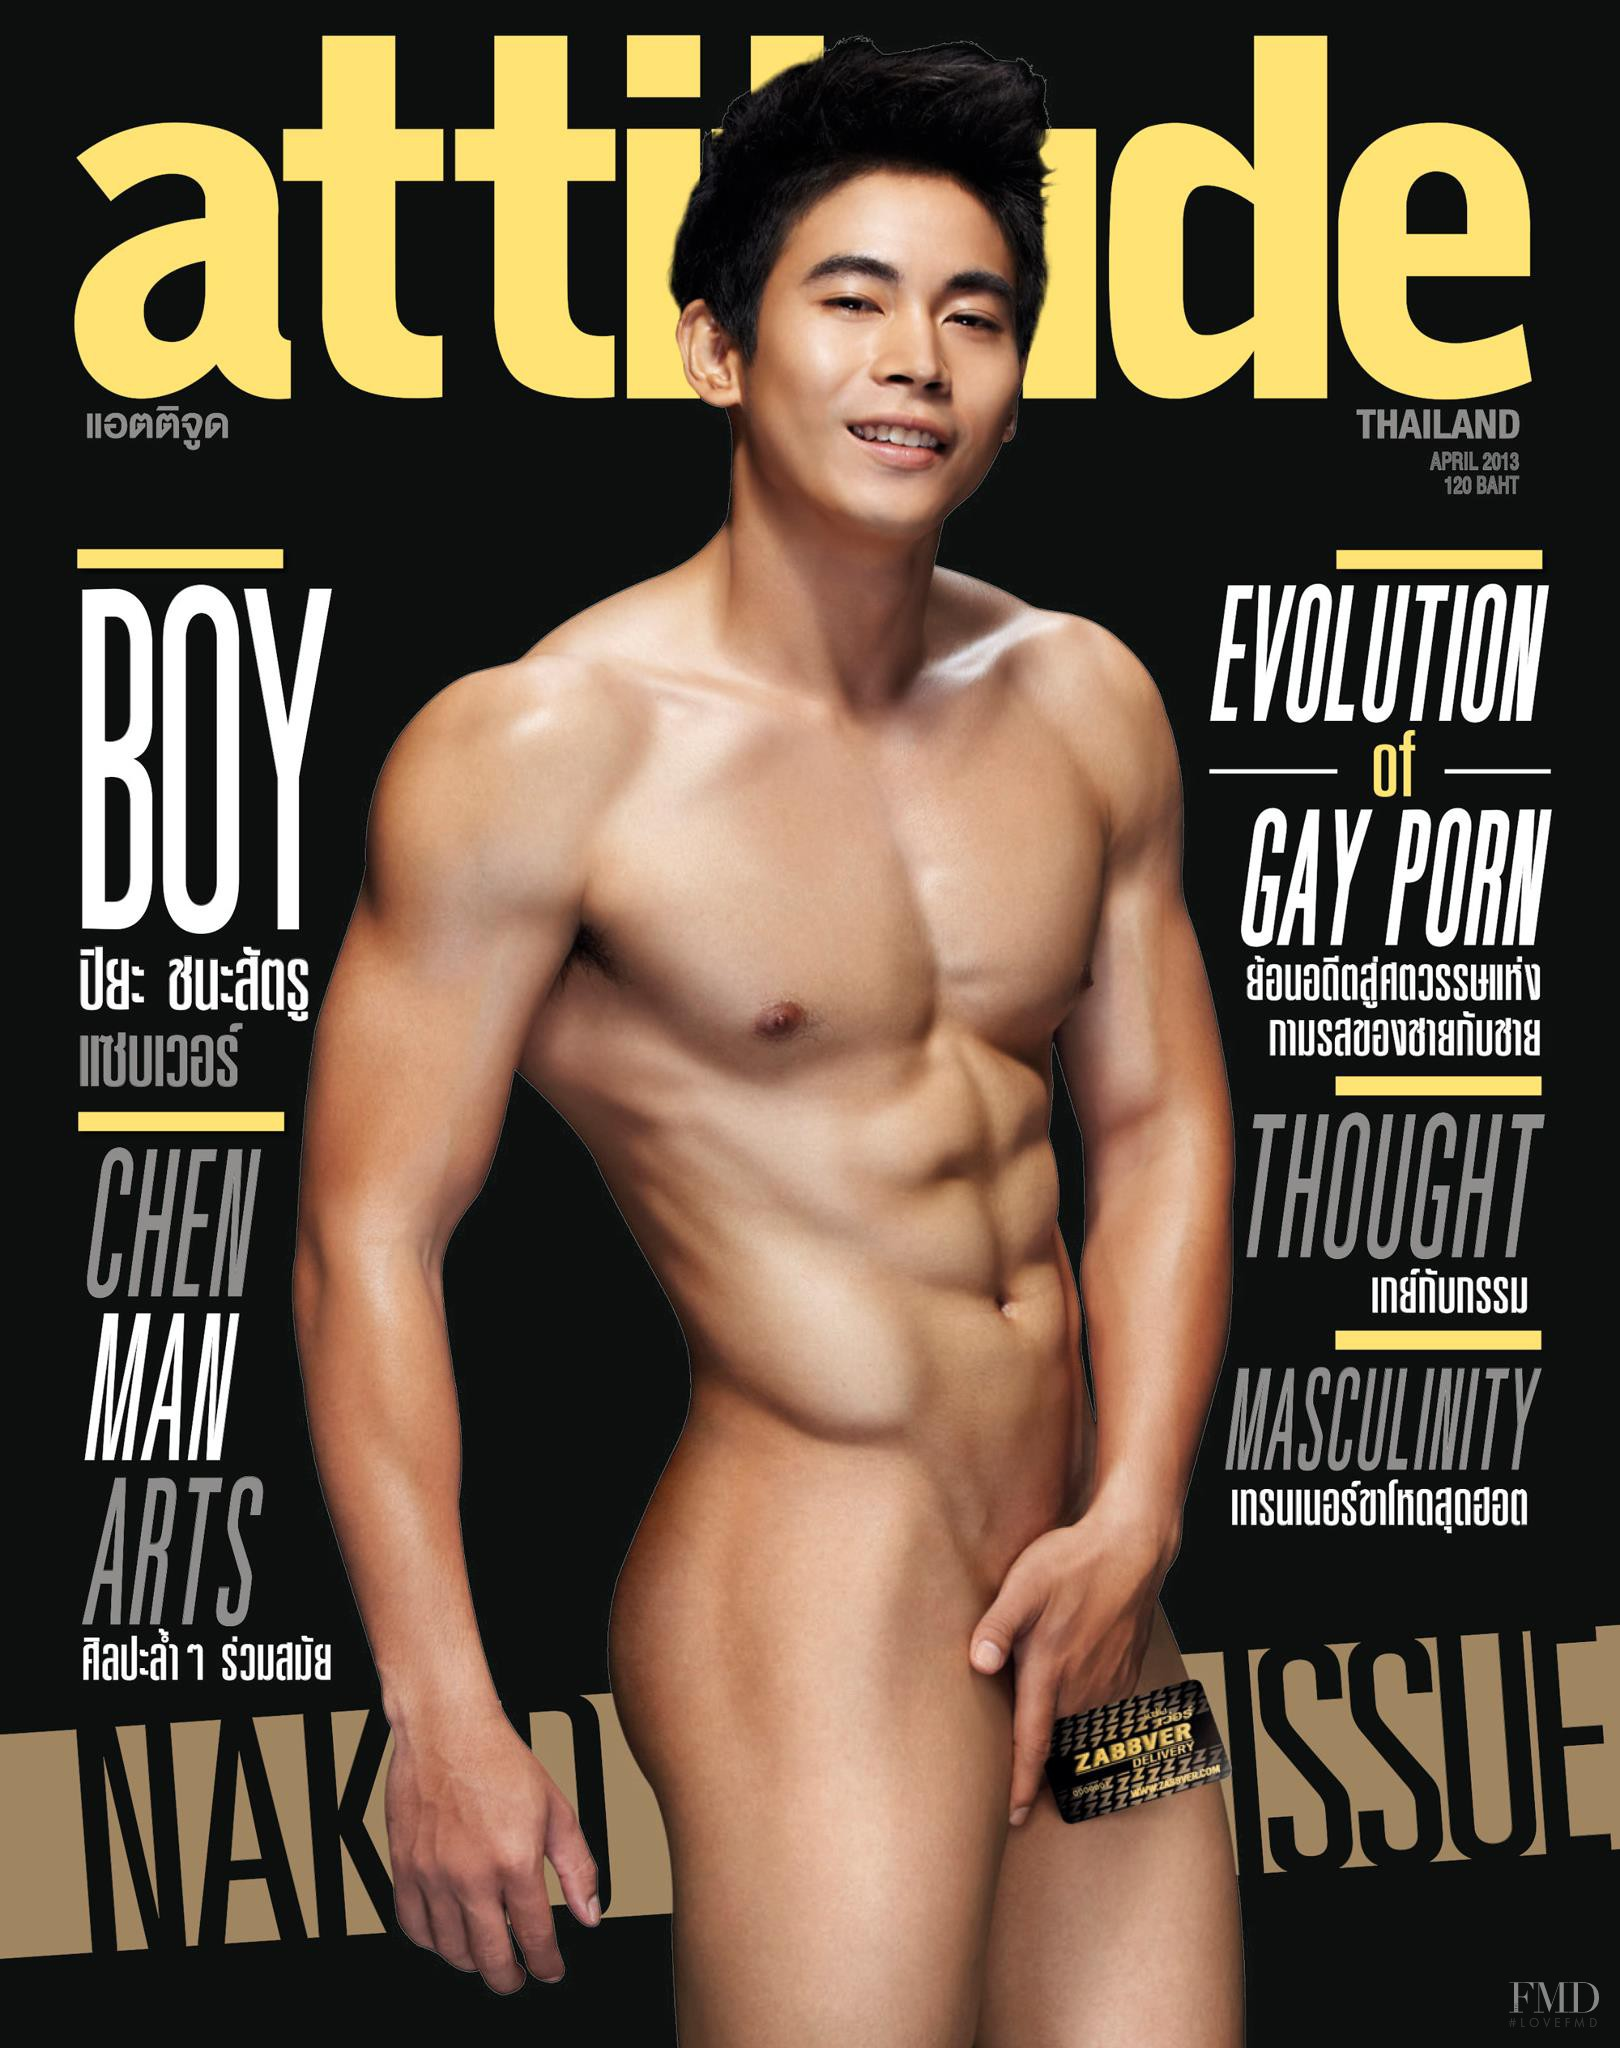 gay men touch Nude magazine in